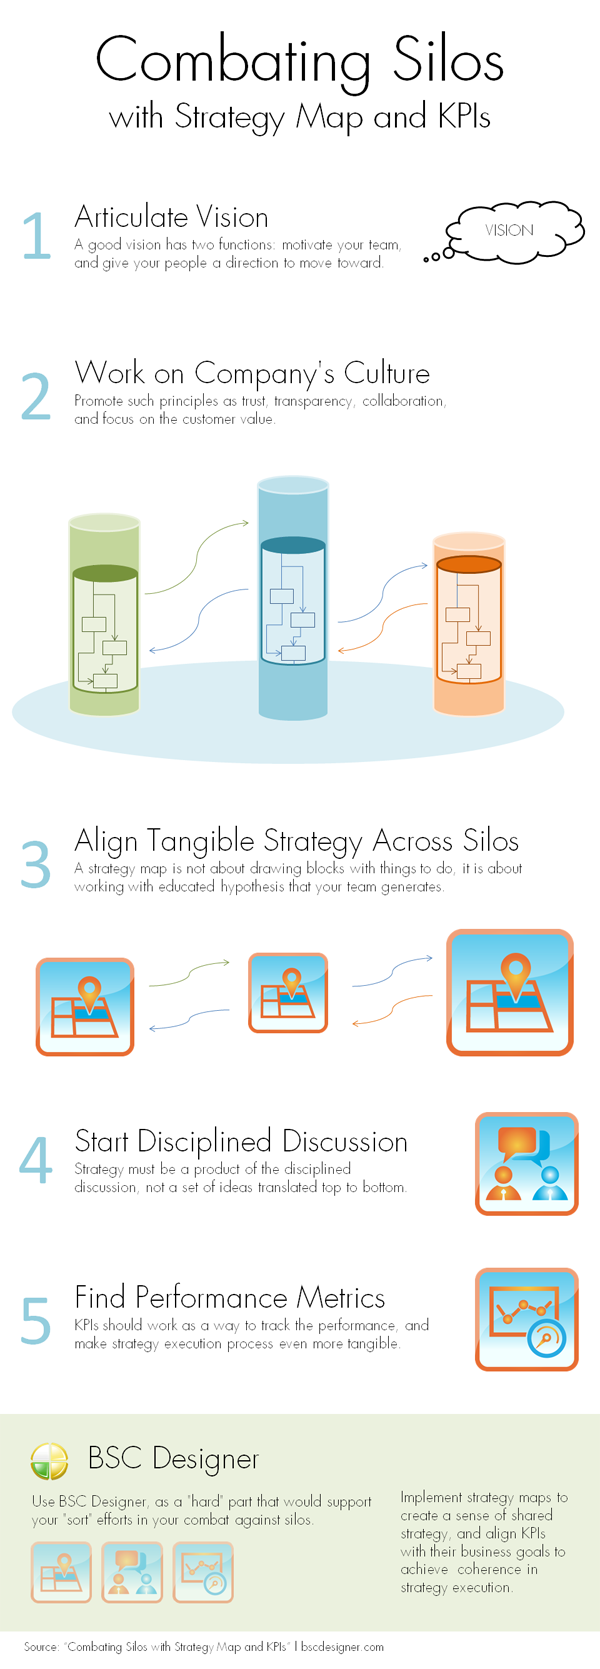 Combat Silos with KPIs and Strategy Maps